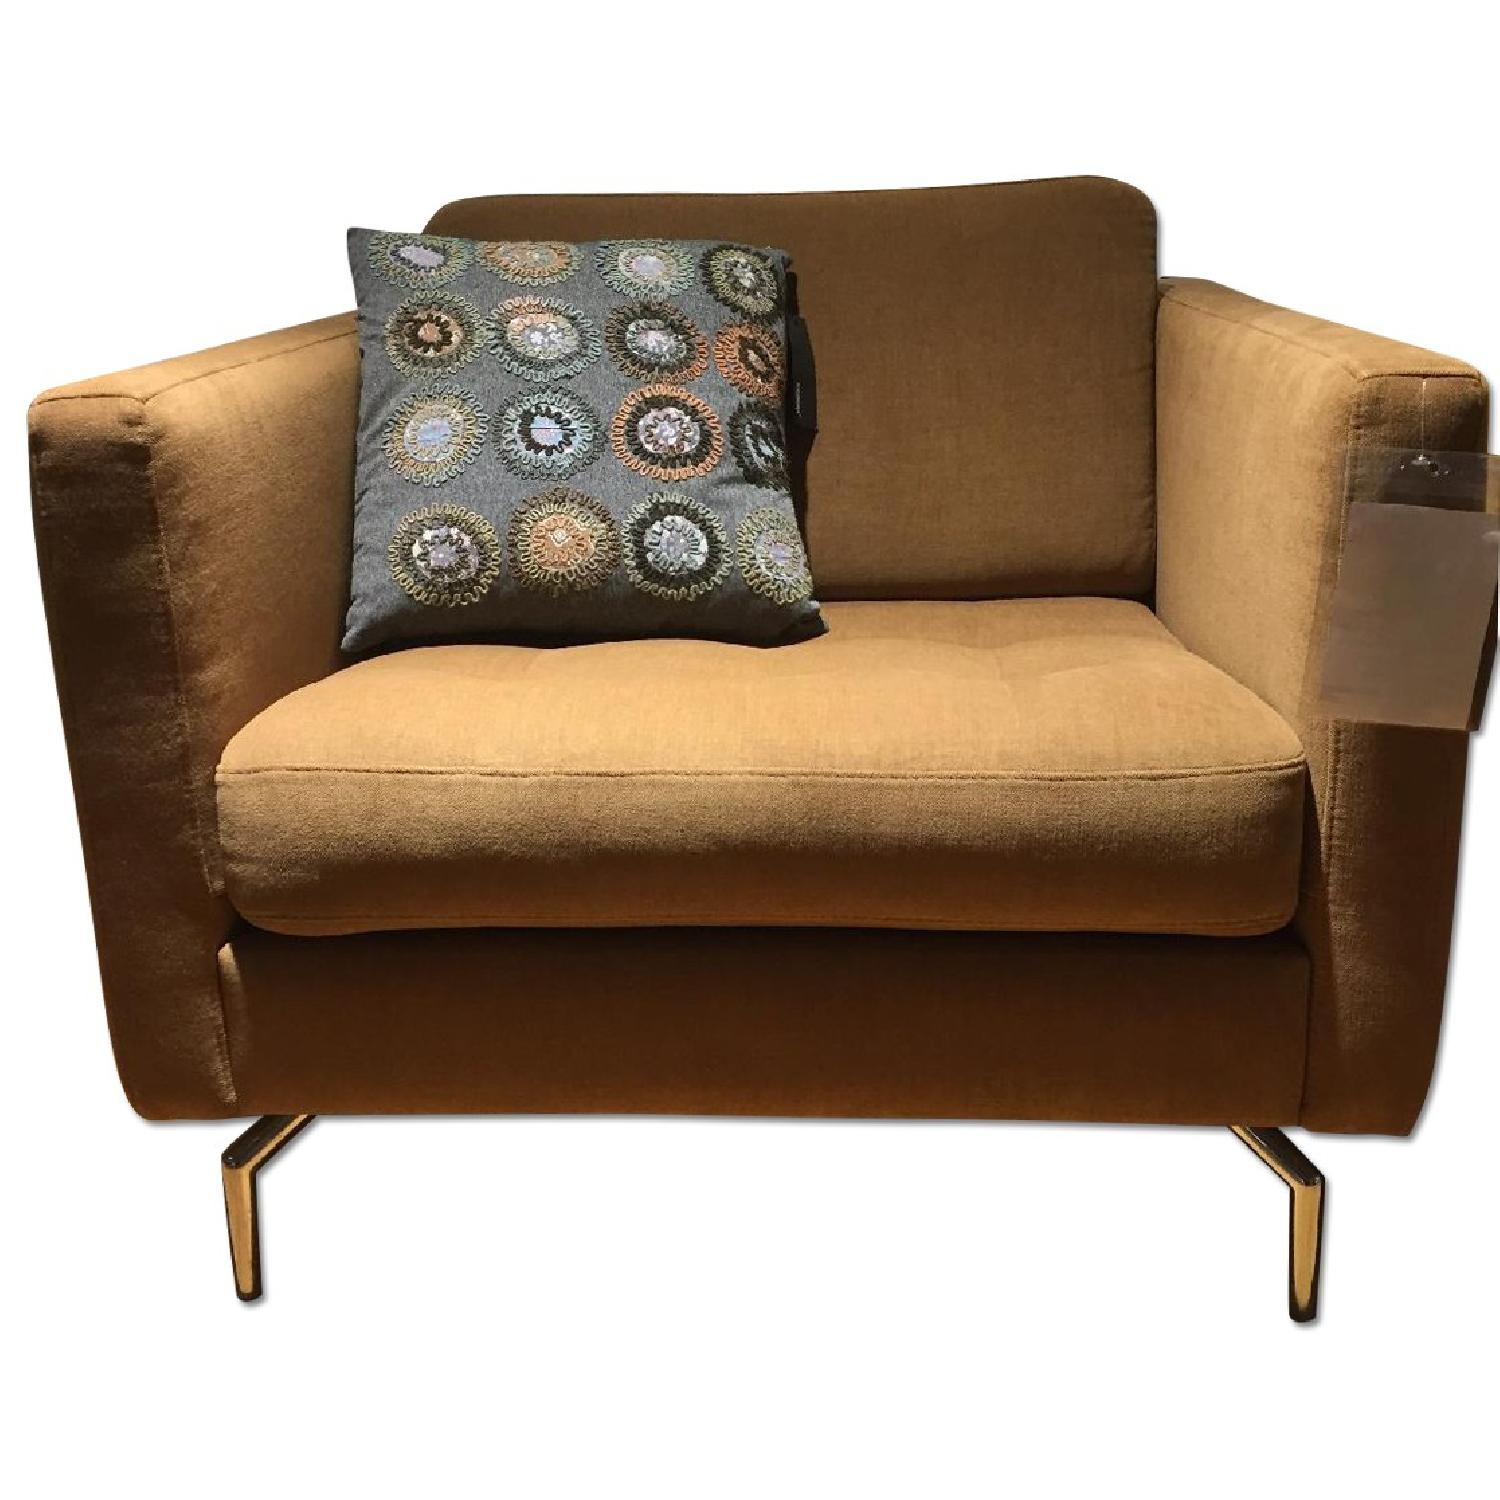 BoConcept Oasaka Armchair w/ Tufted Seat in Caramel Frisco Fabric - image-0